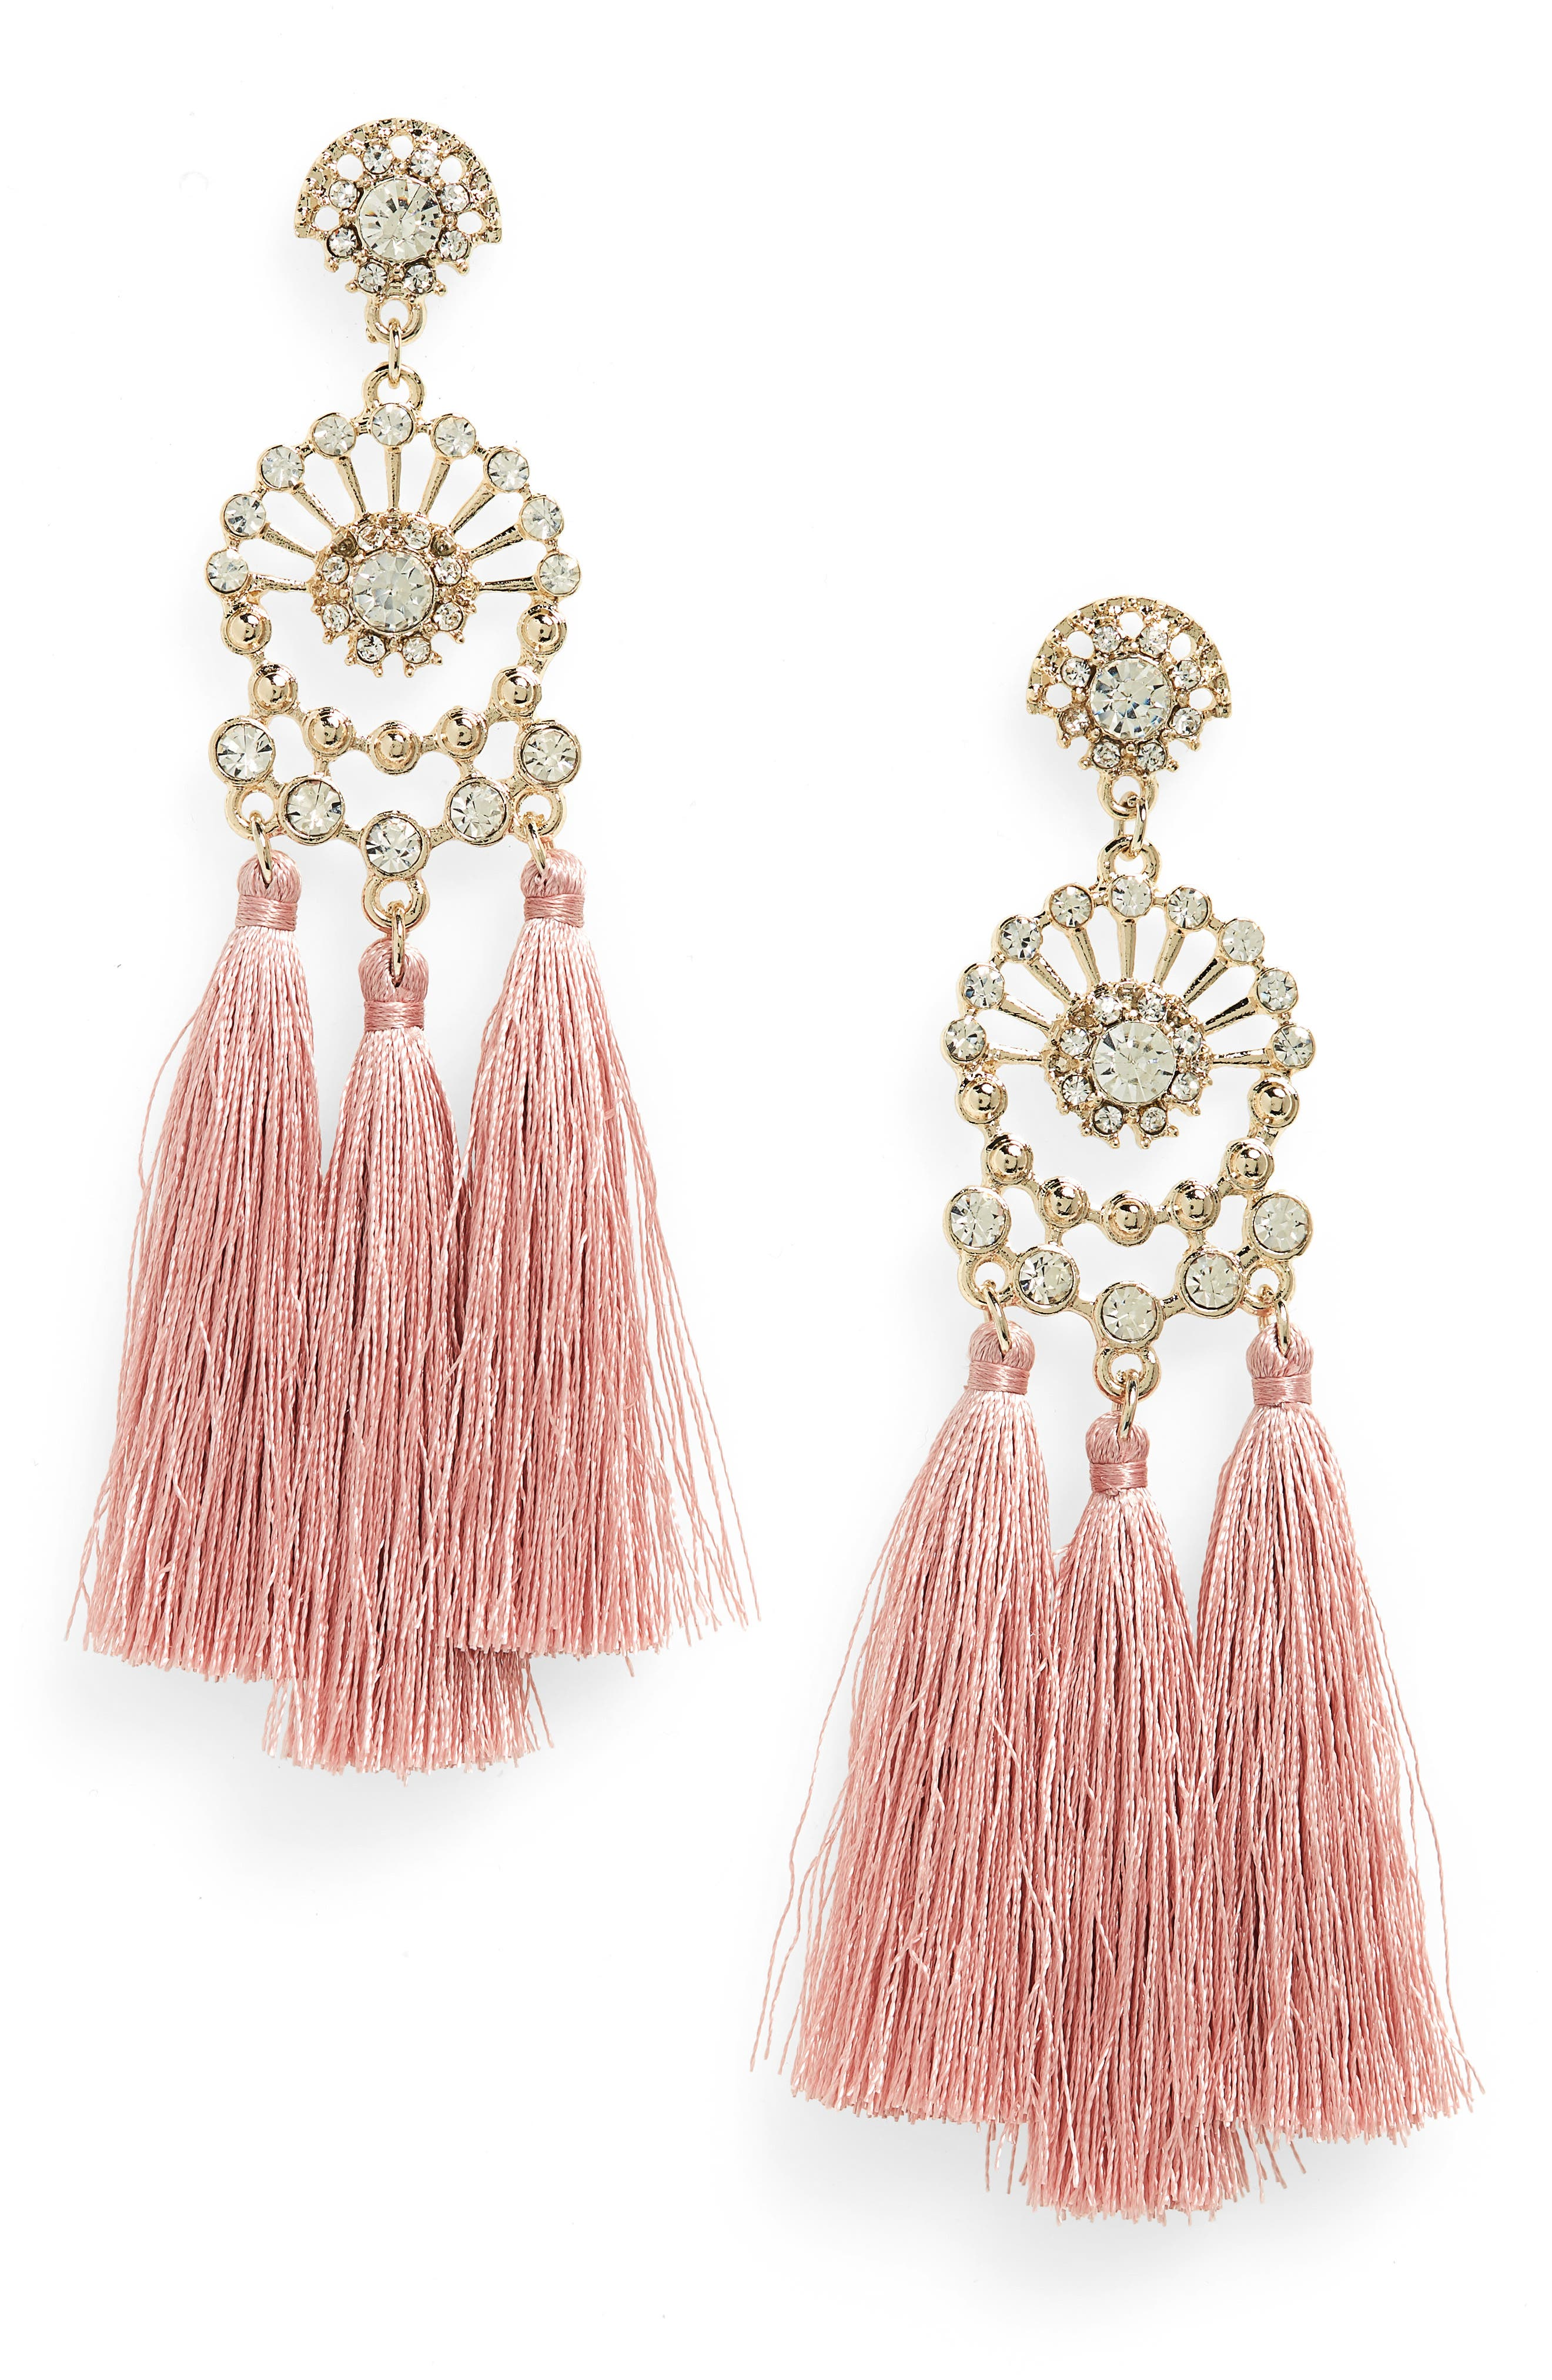 Rhinestone Tassel Drop Earrings,                             Main thumbnail 1, color,                             040